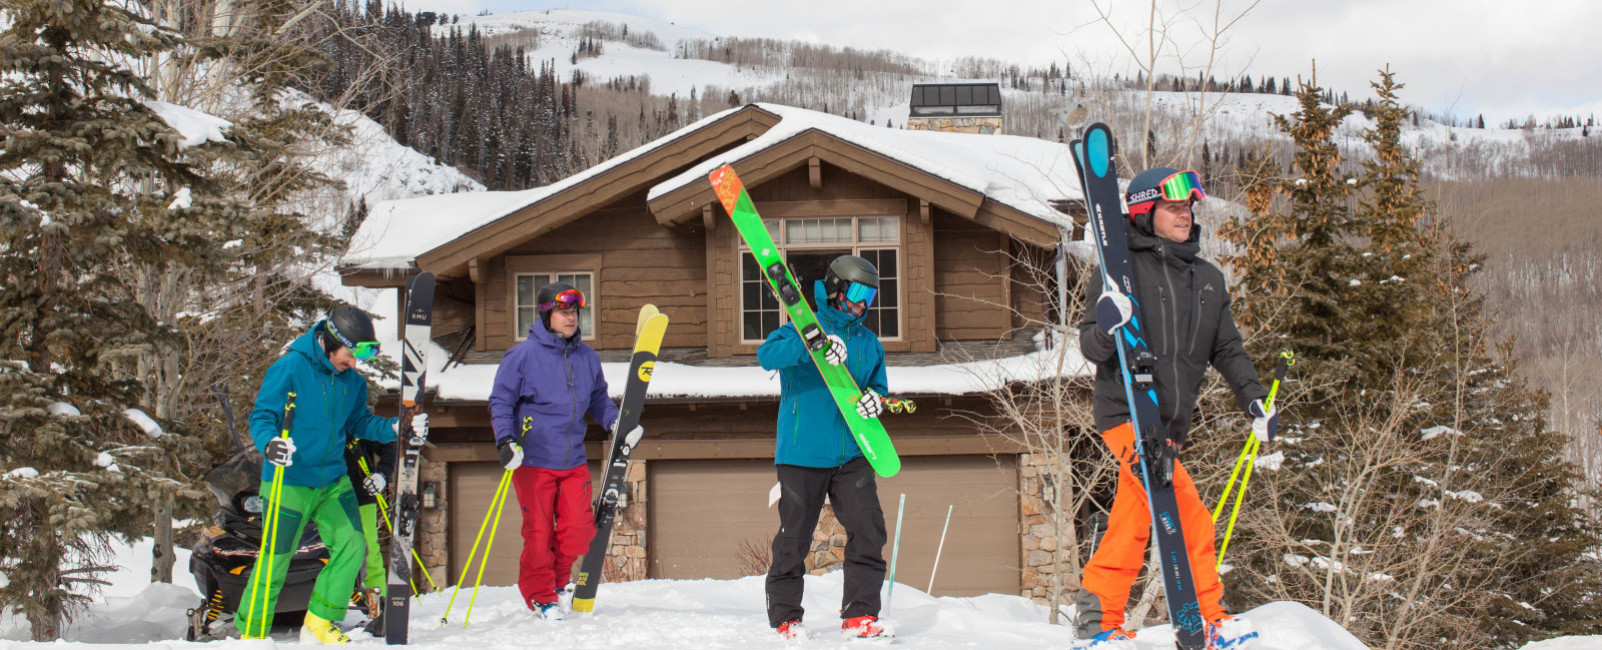 From Testing Skis to Catching Z's - A Ski Tester's Perfect Retreat